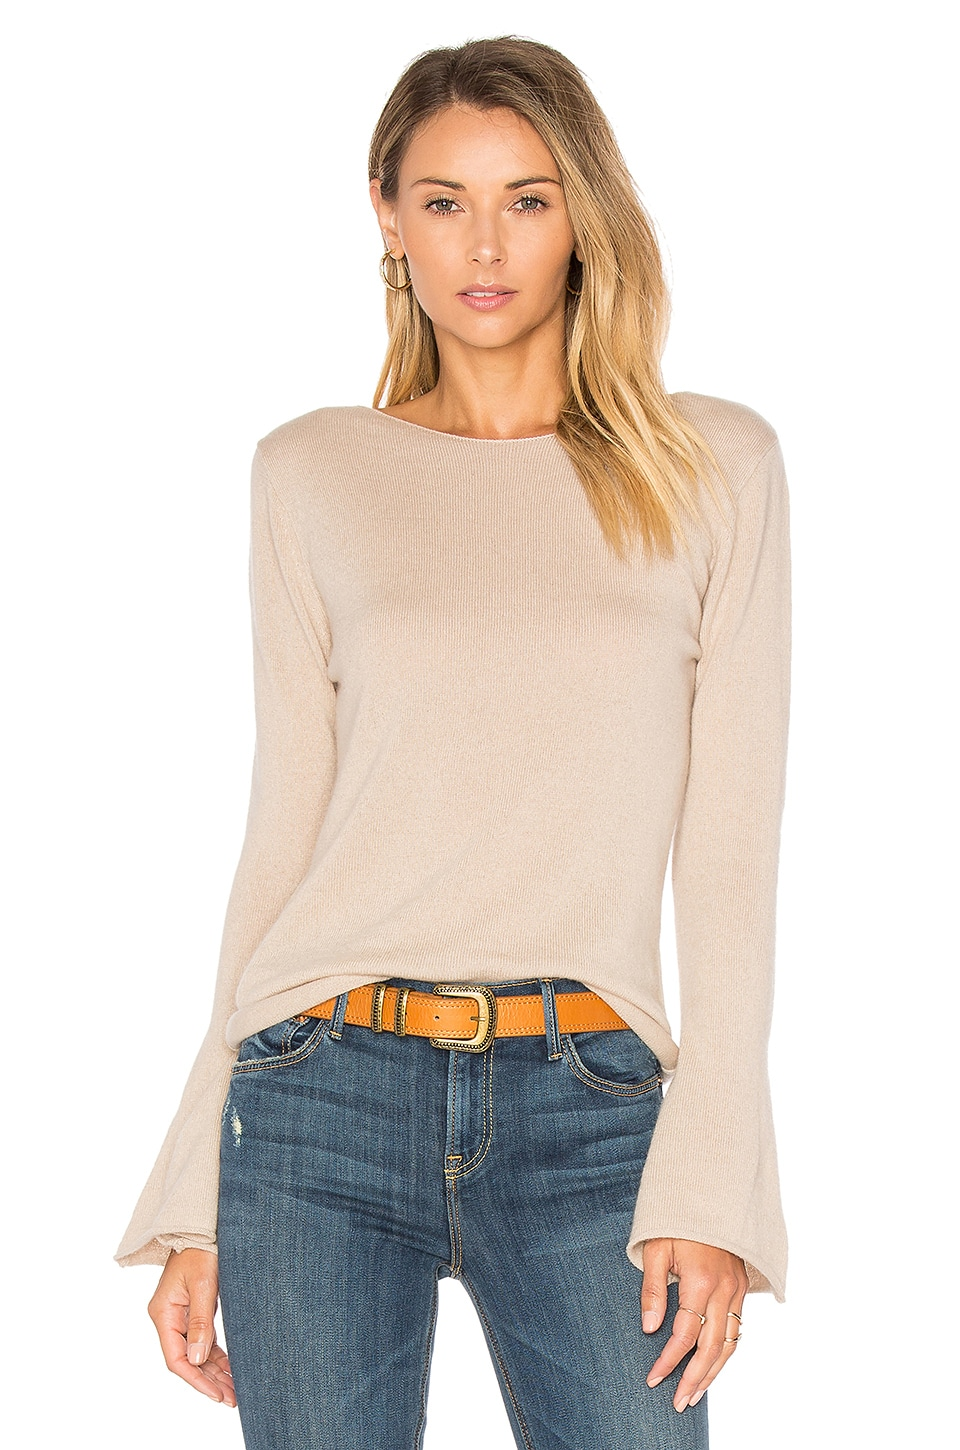 Central Park West Vienna Cashmere Bell Sleeve Sweater in Jute